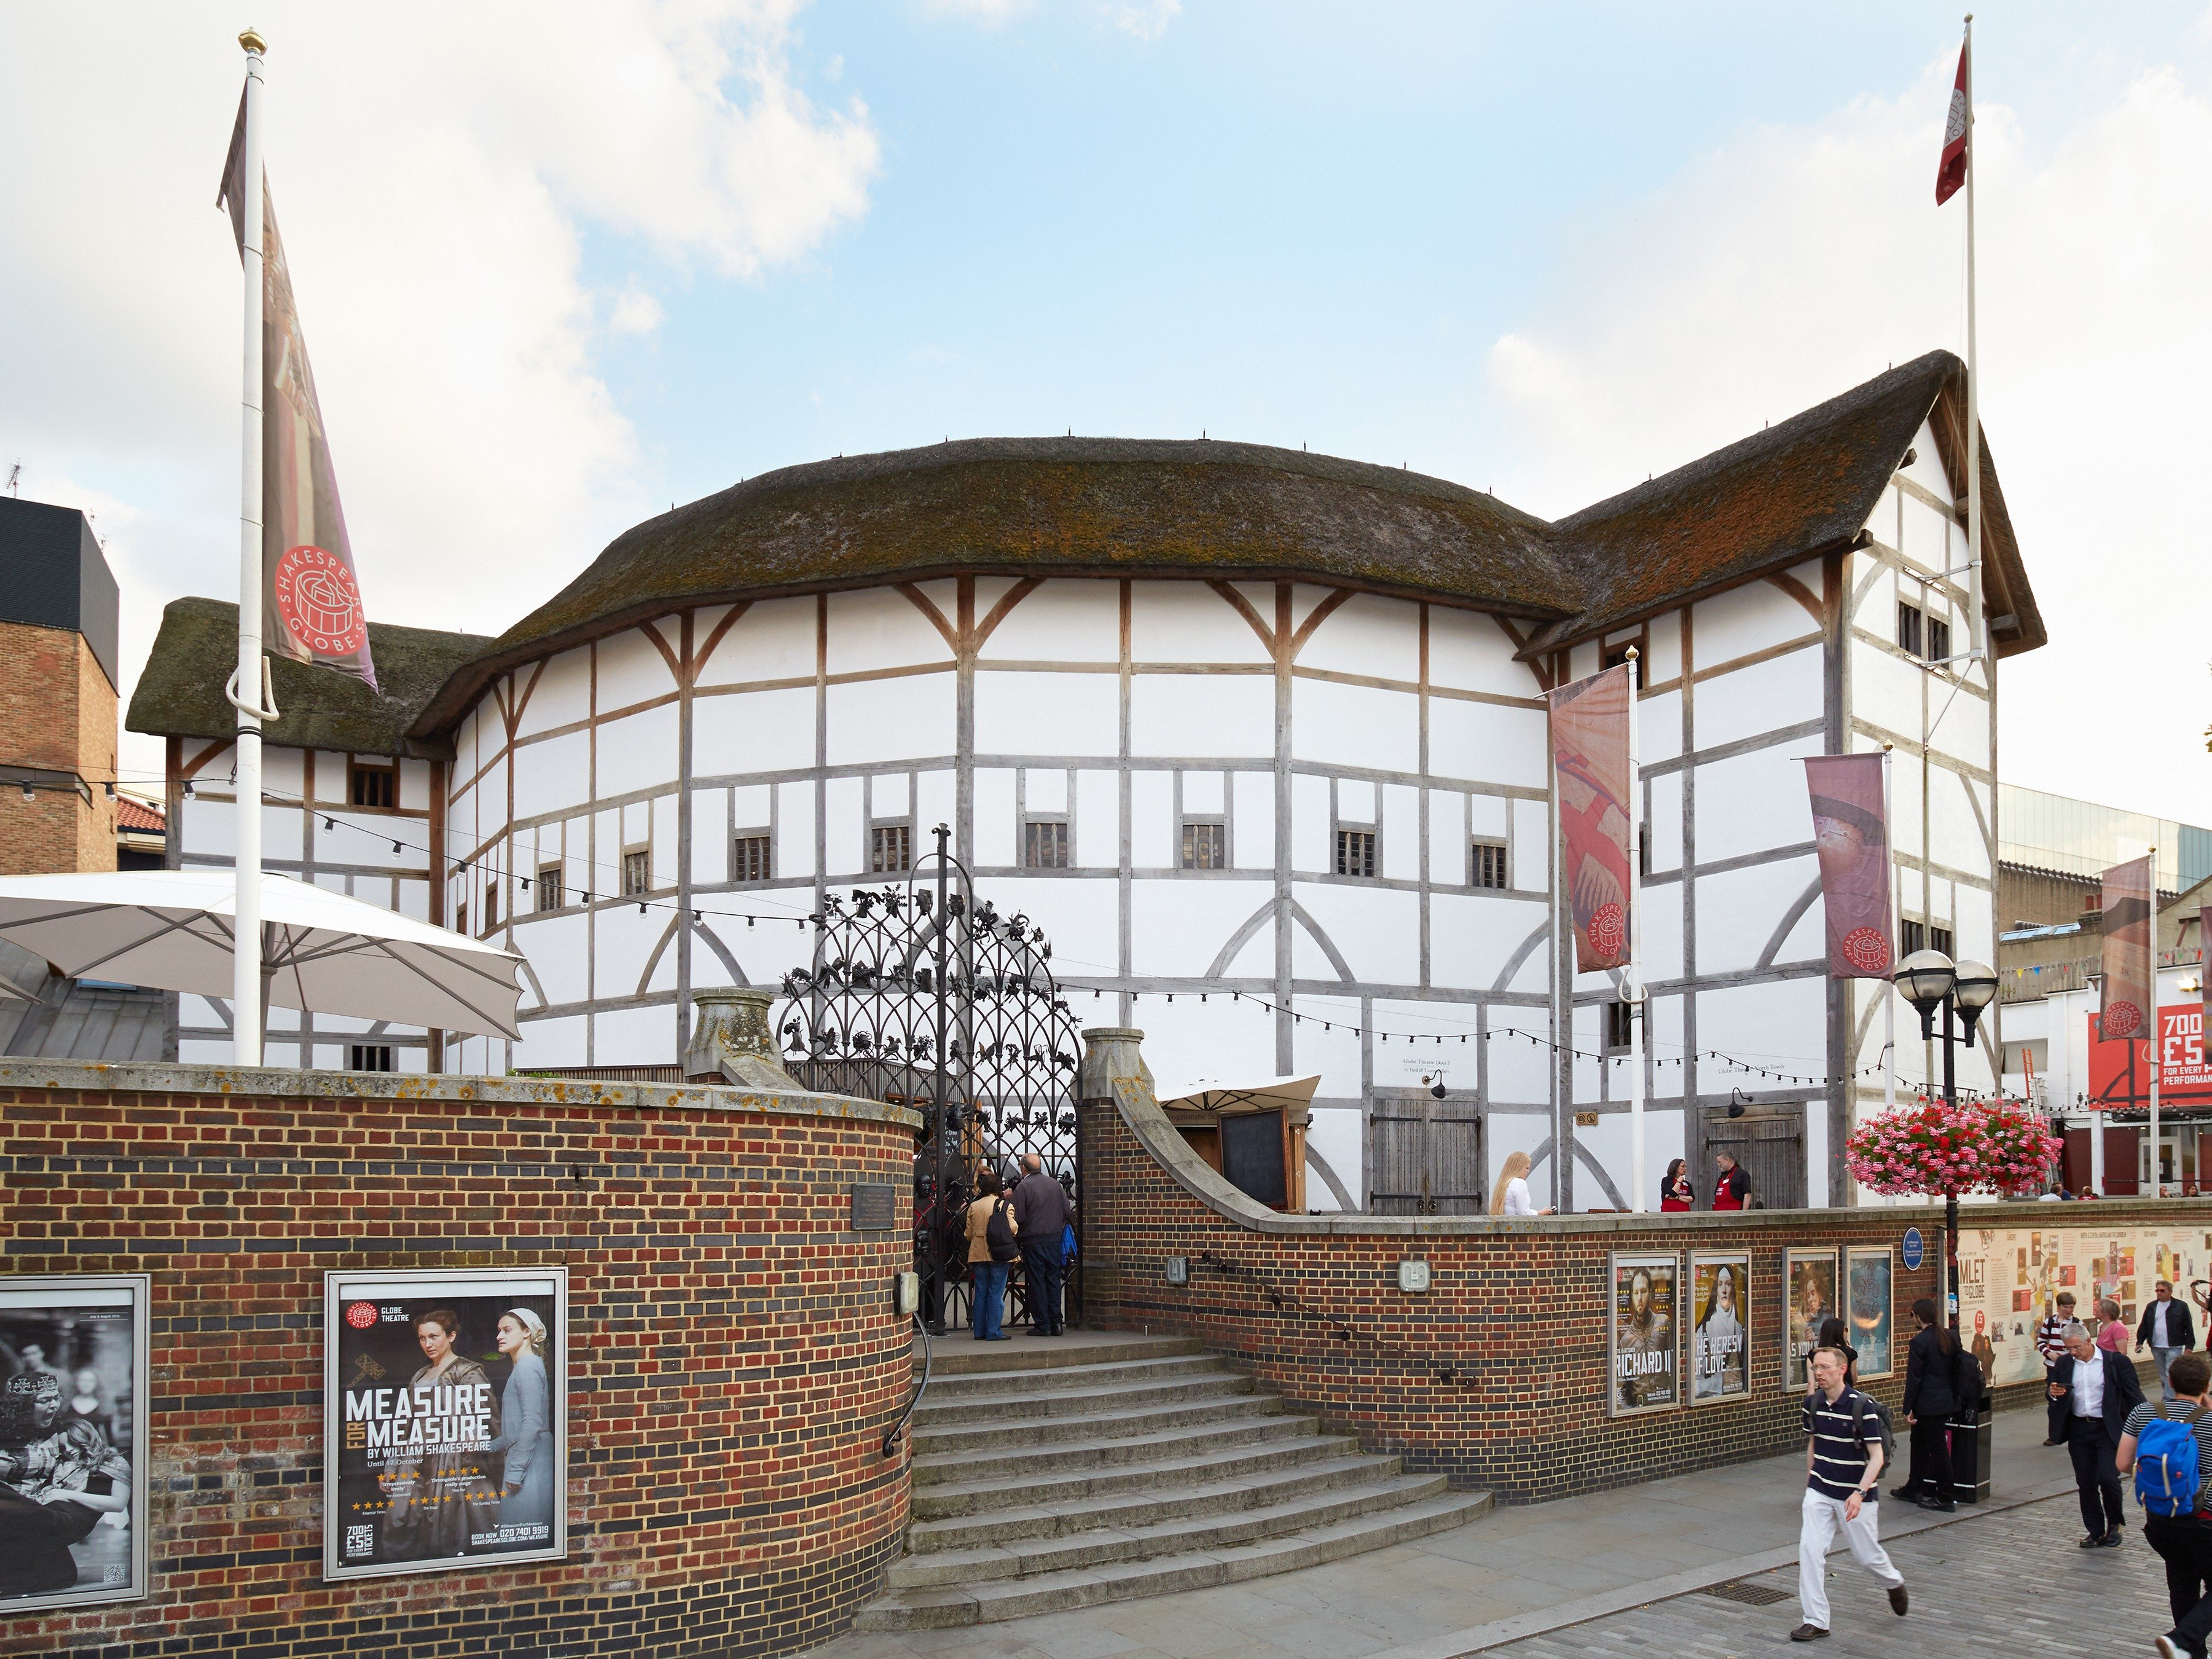 London attractions: Shakespeare's Globe